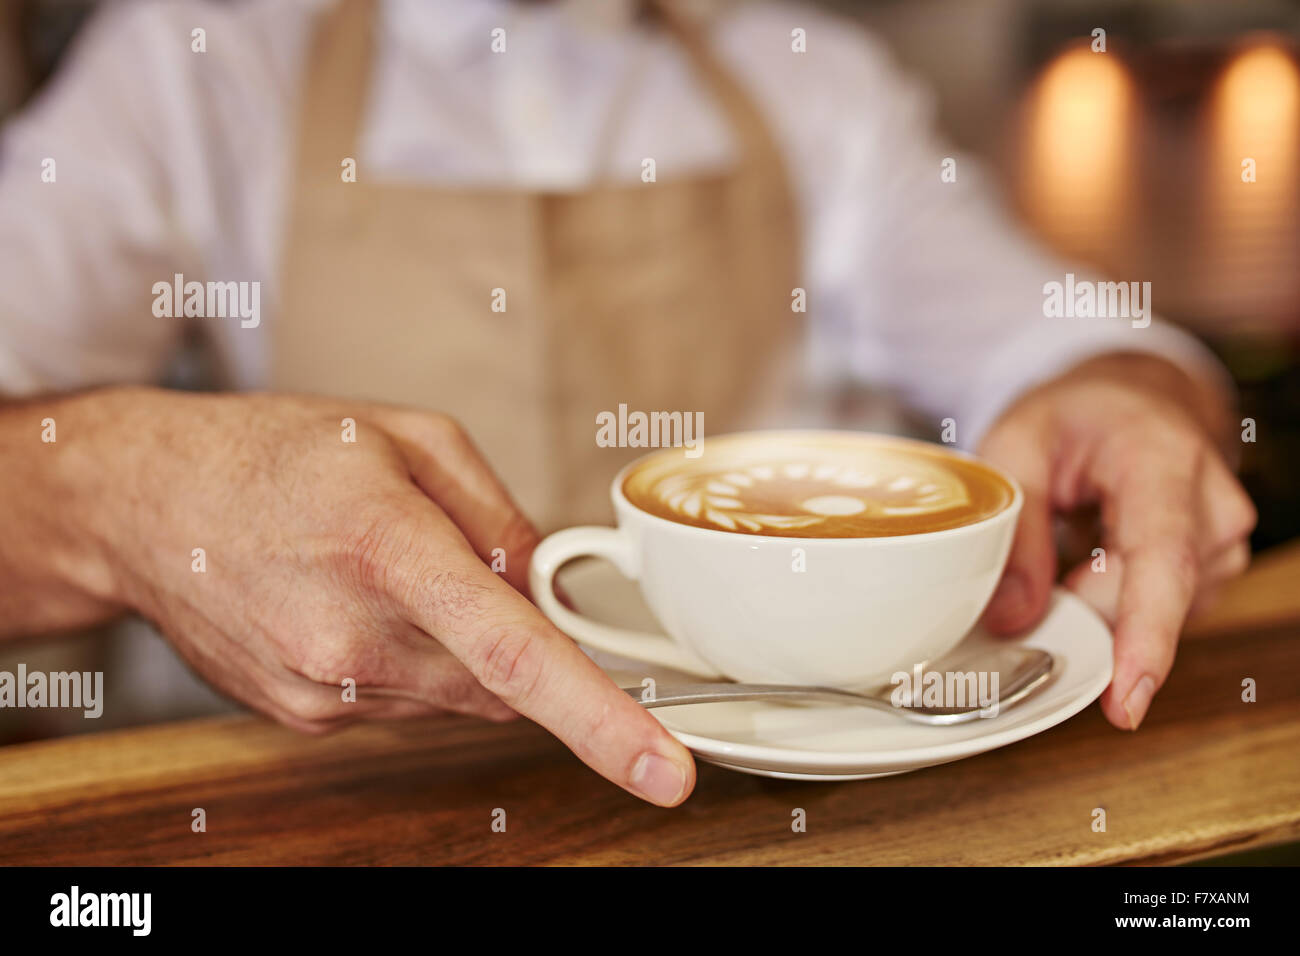 Close up of man serving coffee at cafe. Focus on male hands placing a cup of coffee on wooden counter. - Stock Image